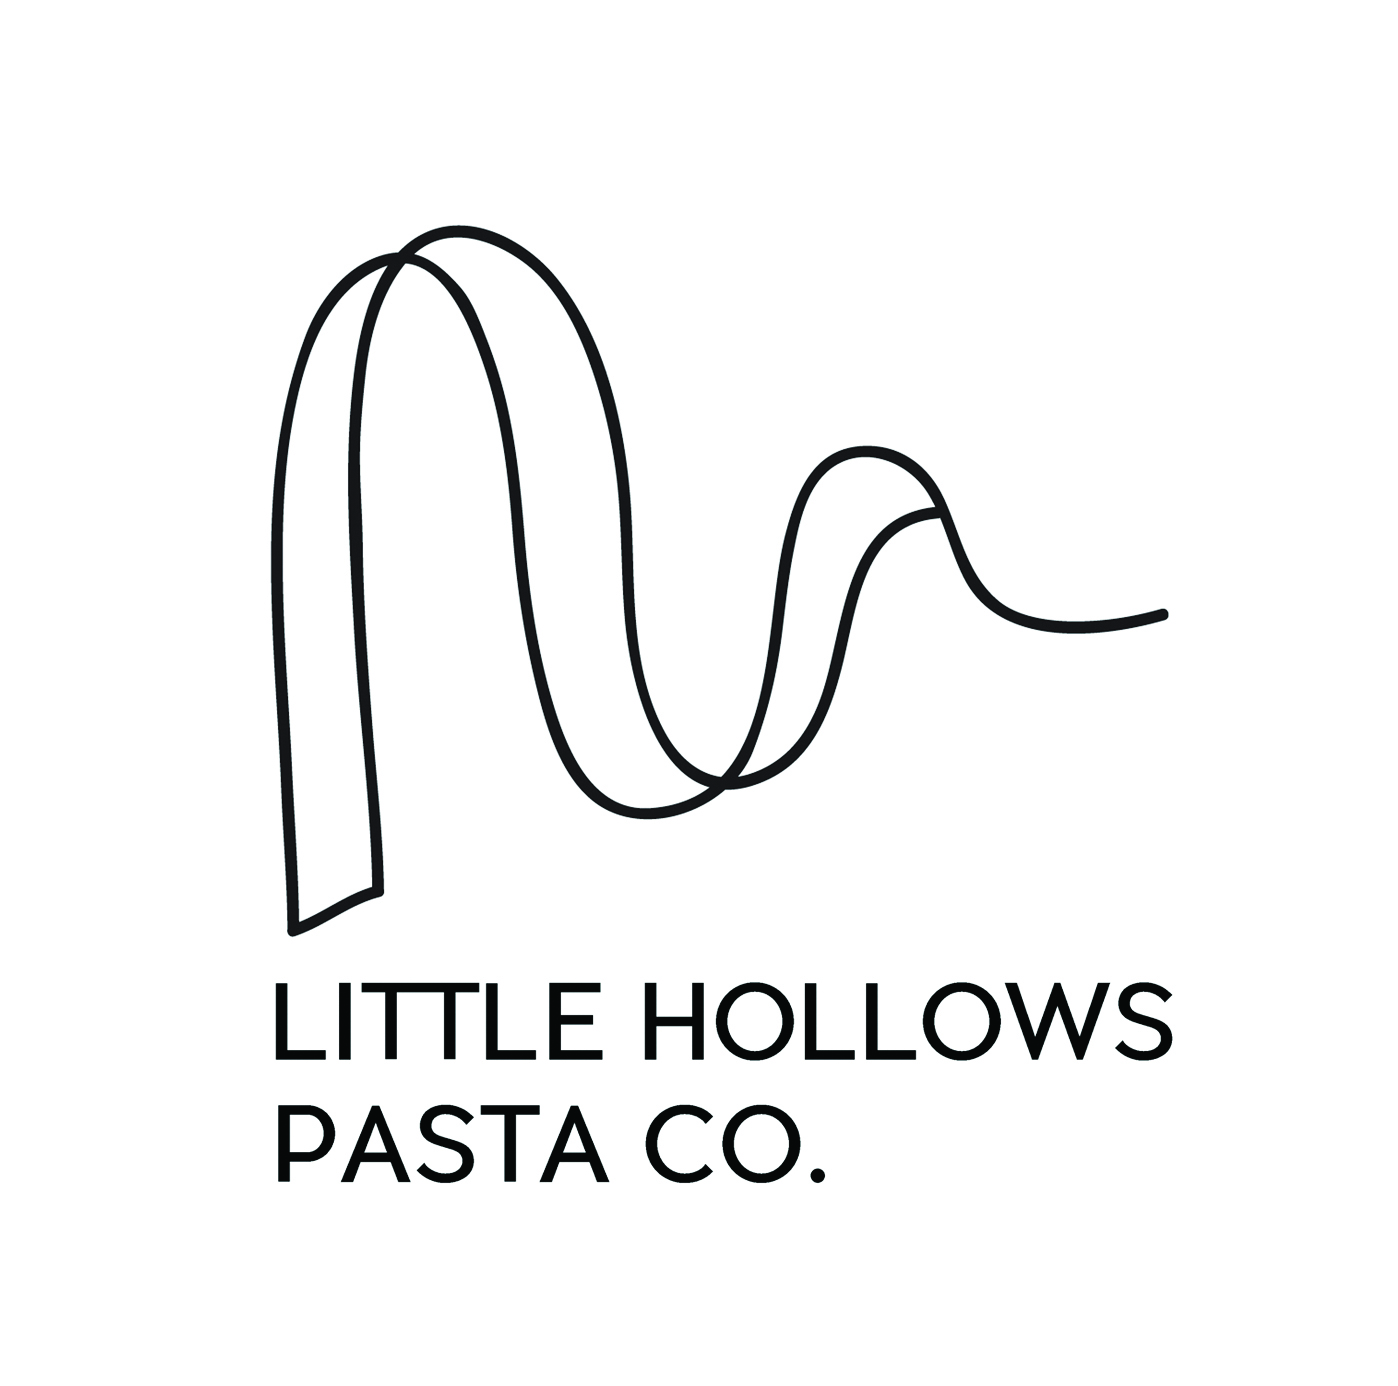 LITTLE HOLLOWS PASTA CO.